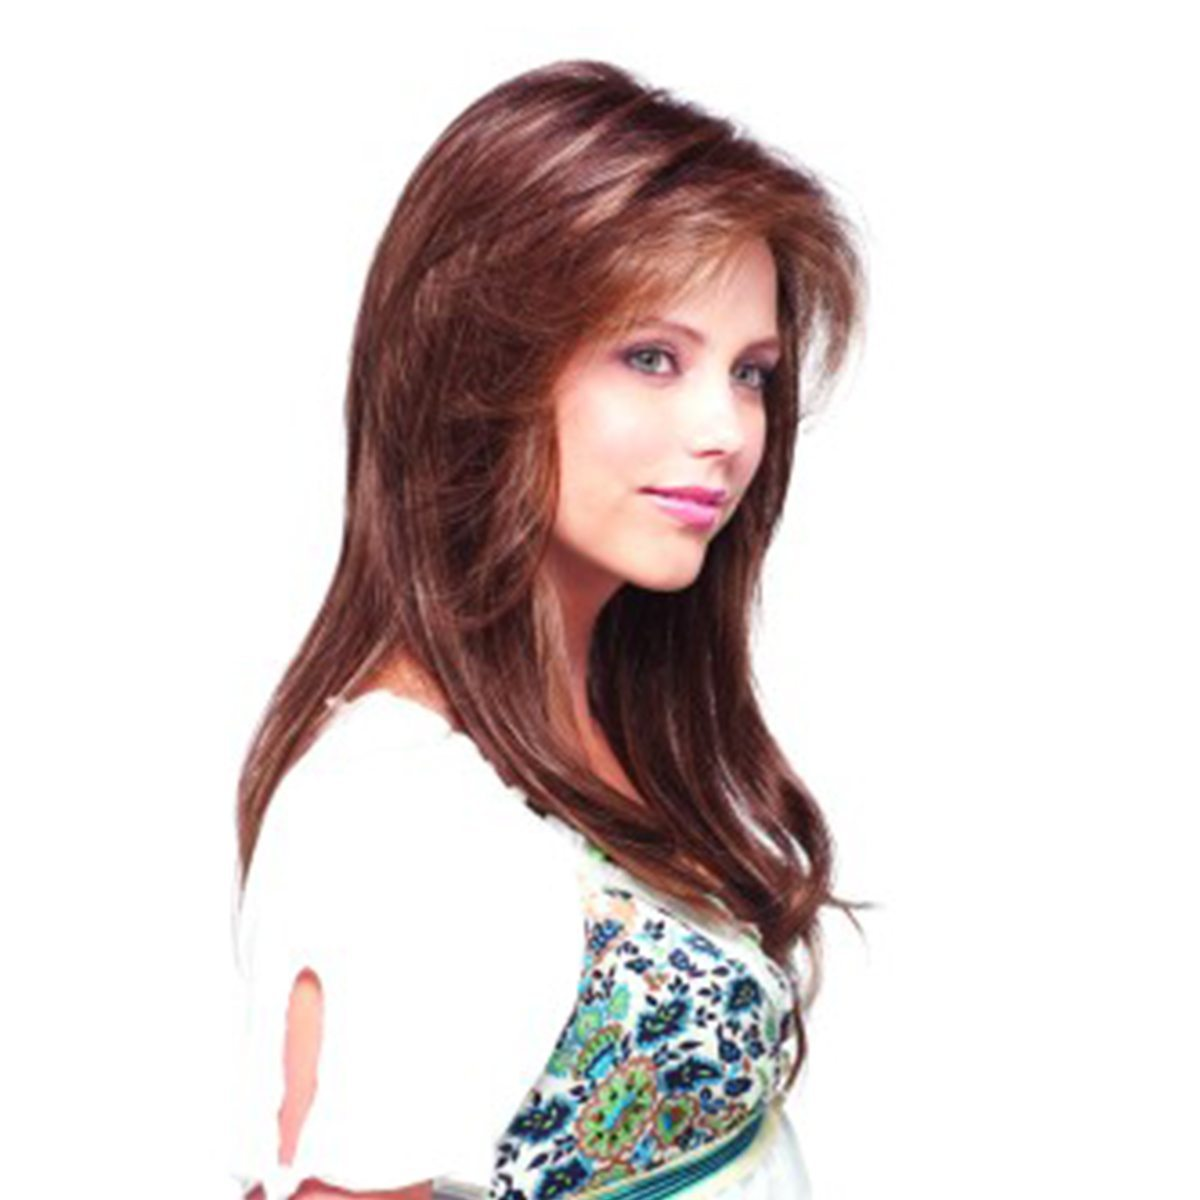 Pam wig Noriko Rene of Paris - image ashley-rop on https://purewigs.com